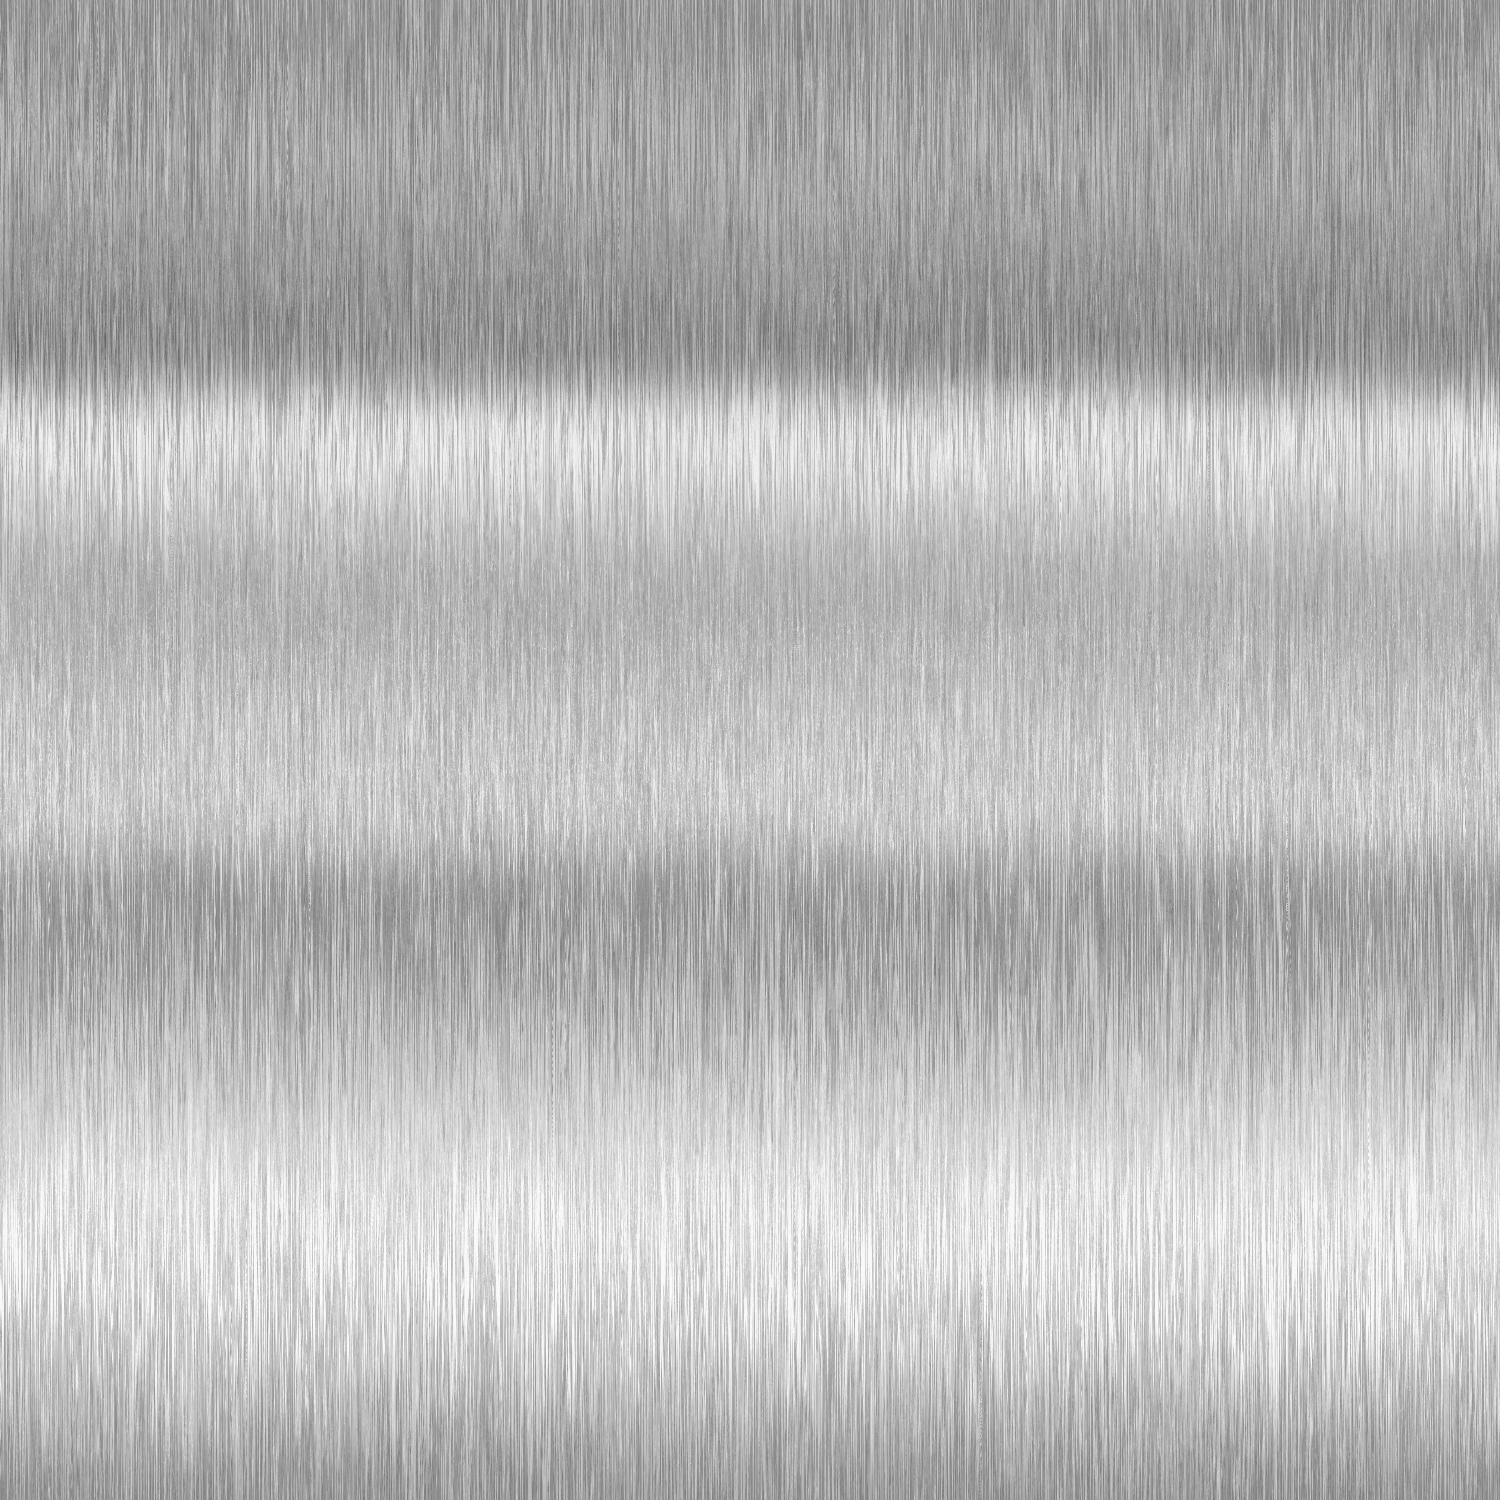 Silver Background.